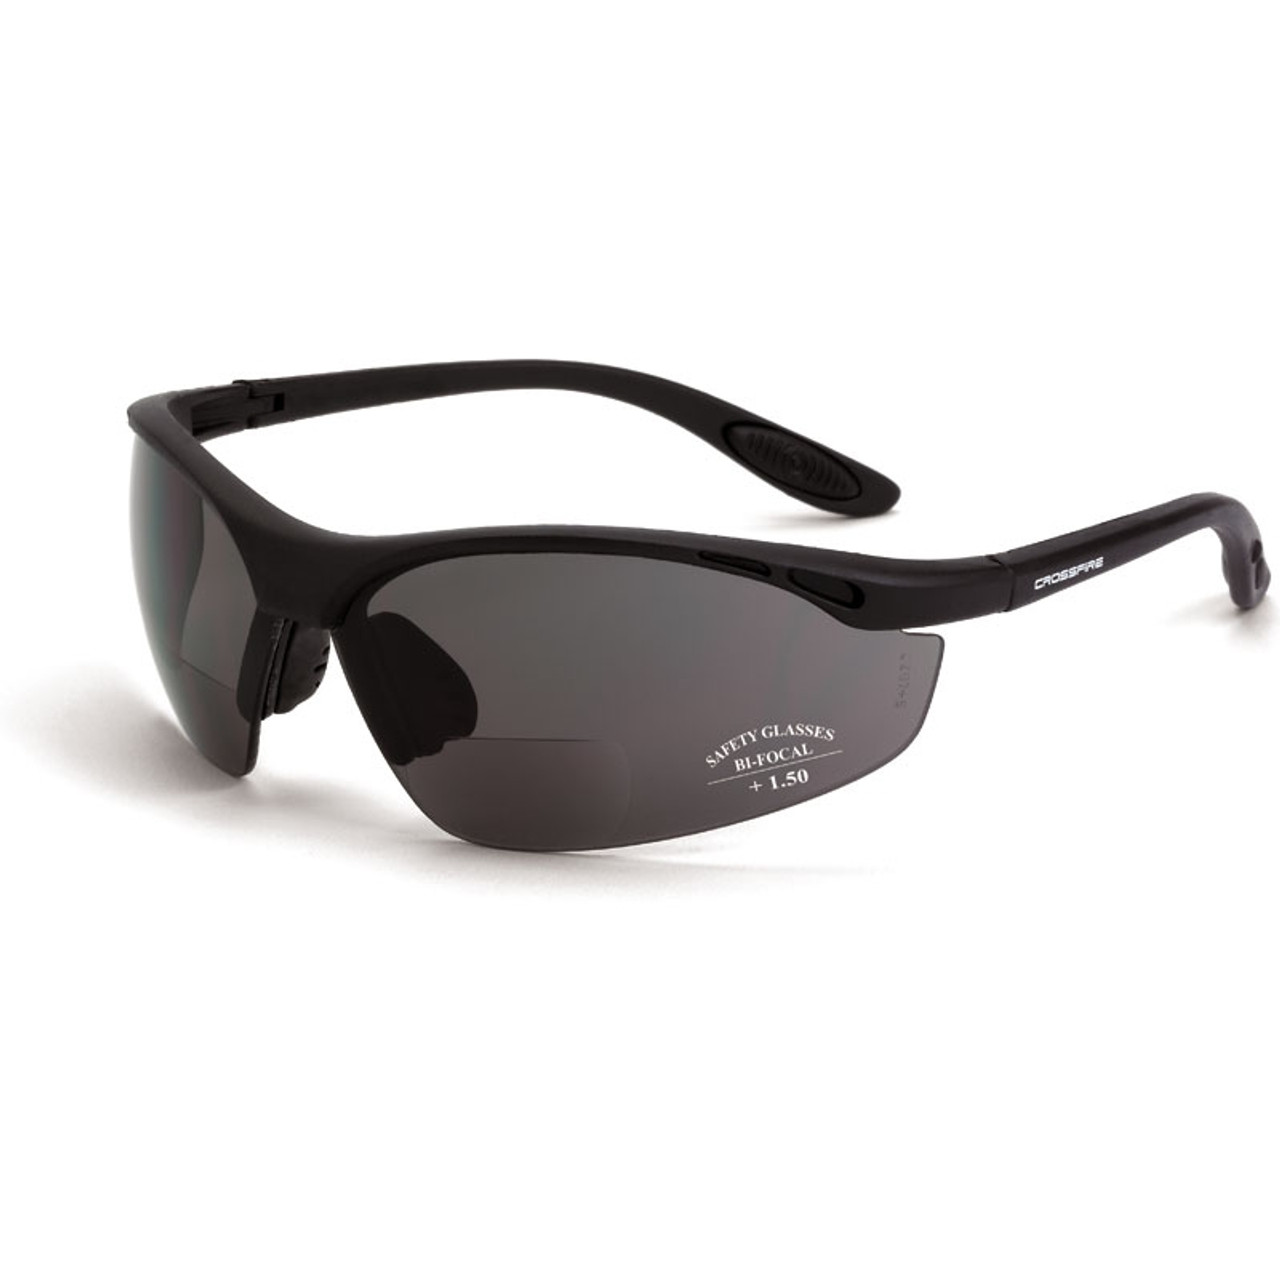 c5a6bb1e616 Crossfire Bifocal Safety Glasses - Box of 12 - Talon-Readers